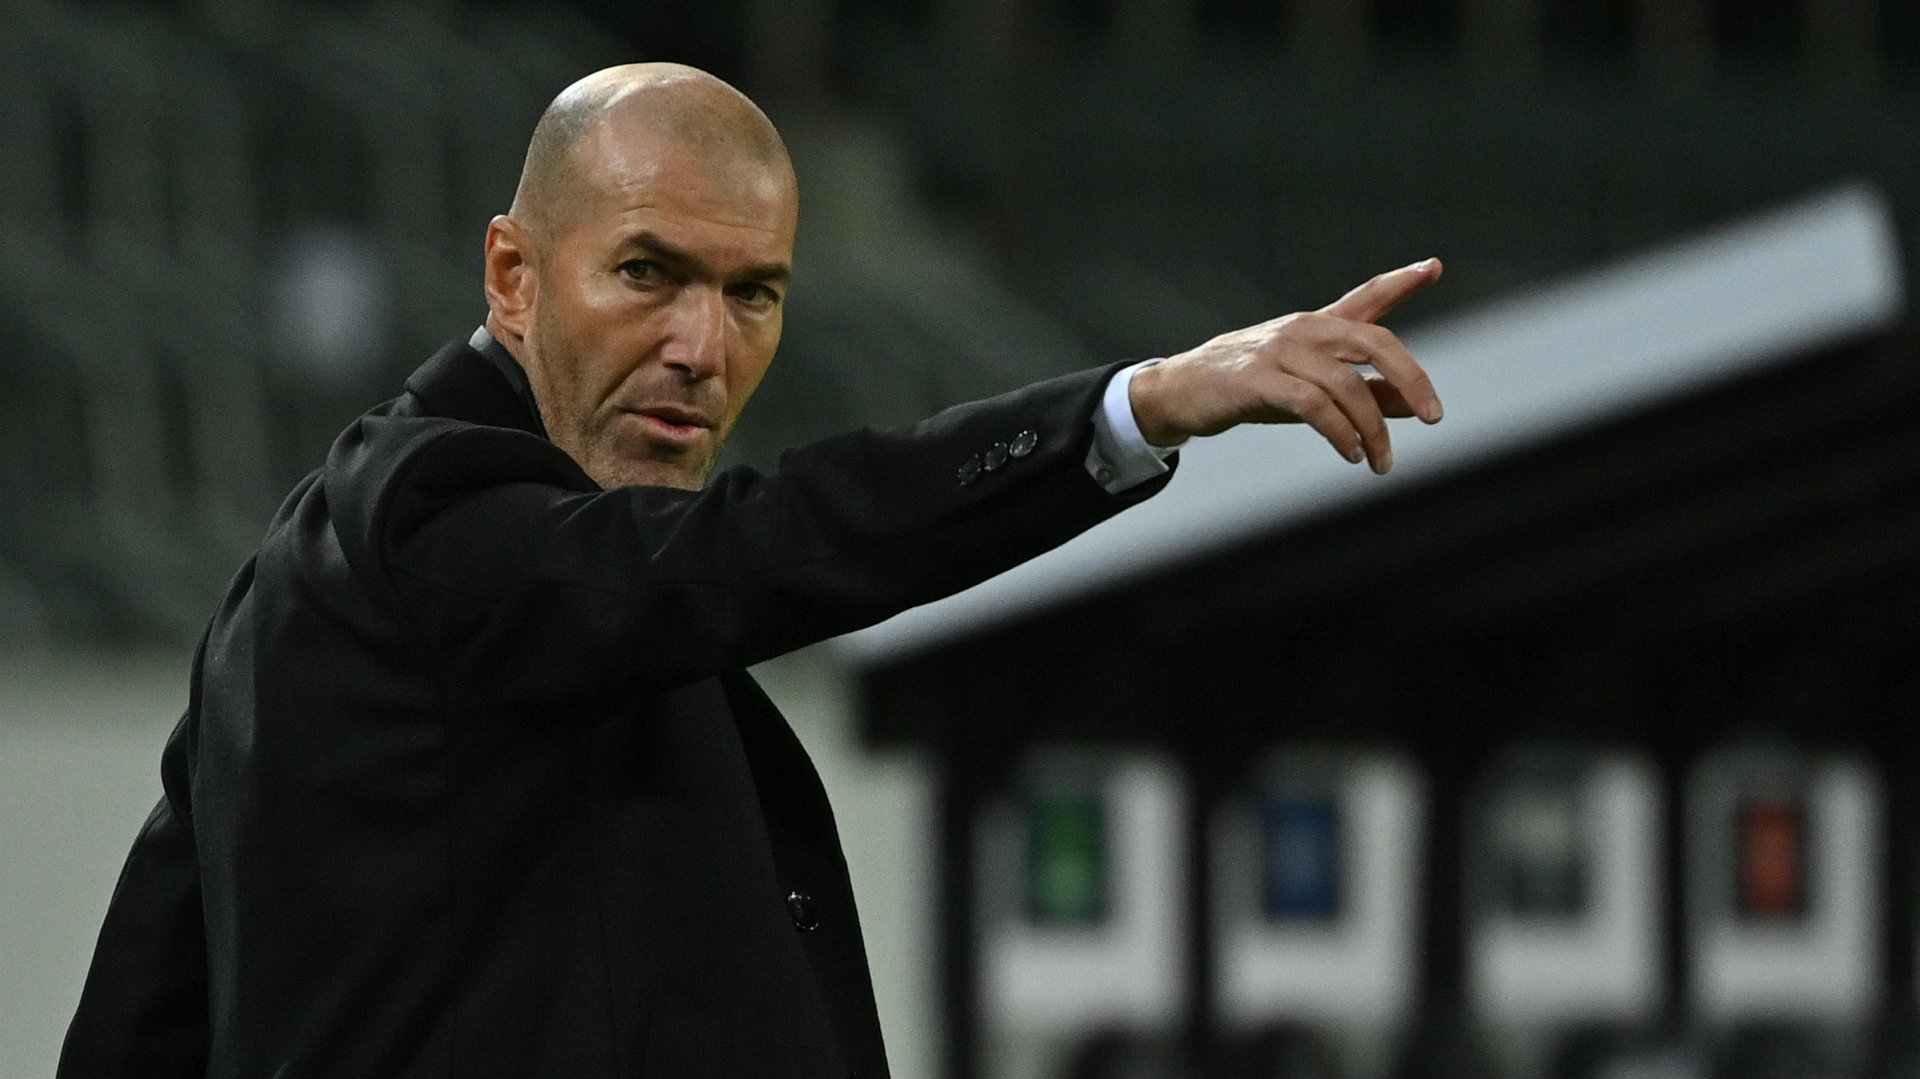 'Zidane has enough credit for two seasons without a trophy' - De la Red defends under-fire Real Madrid boss